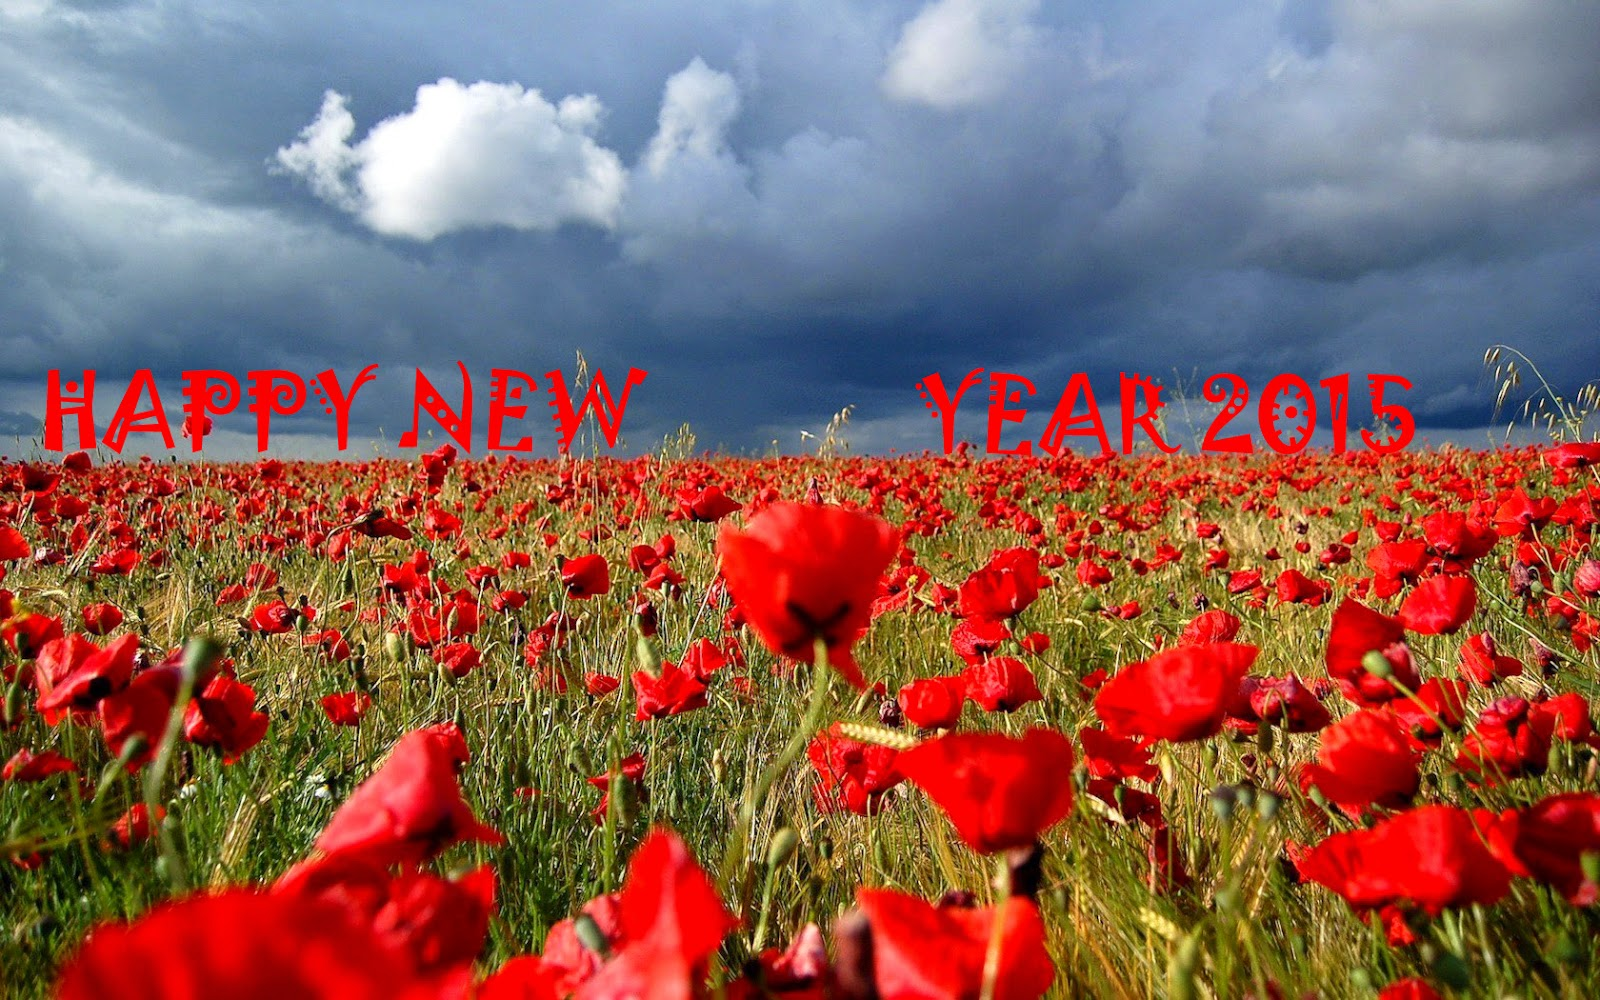 Happy New Year 2015 - Best eCards